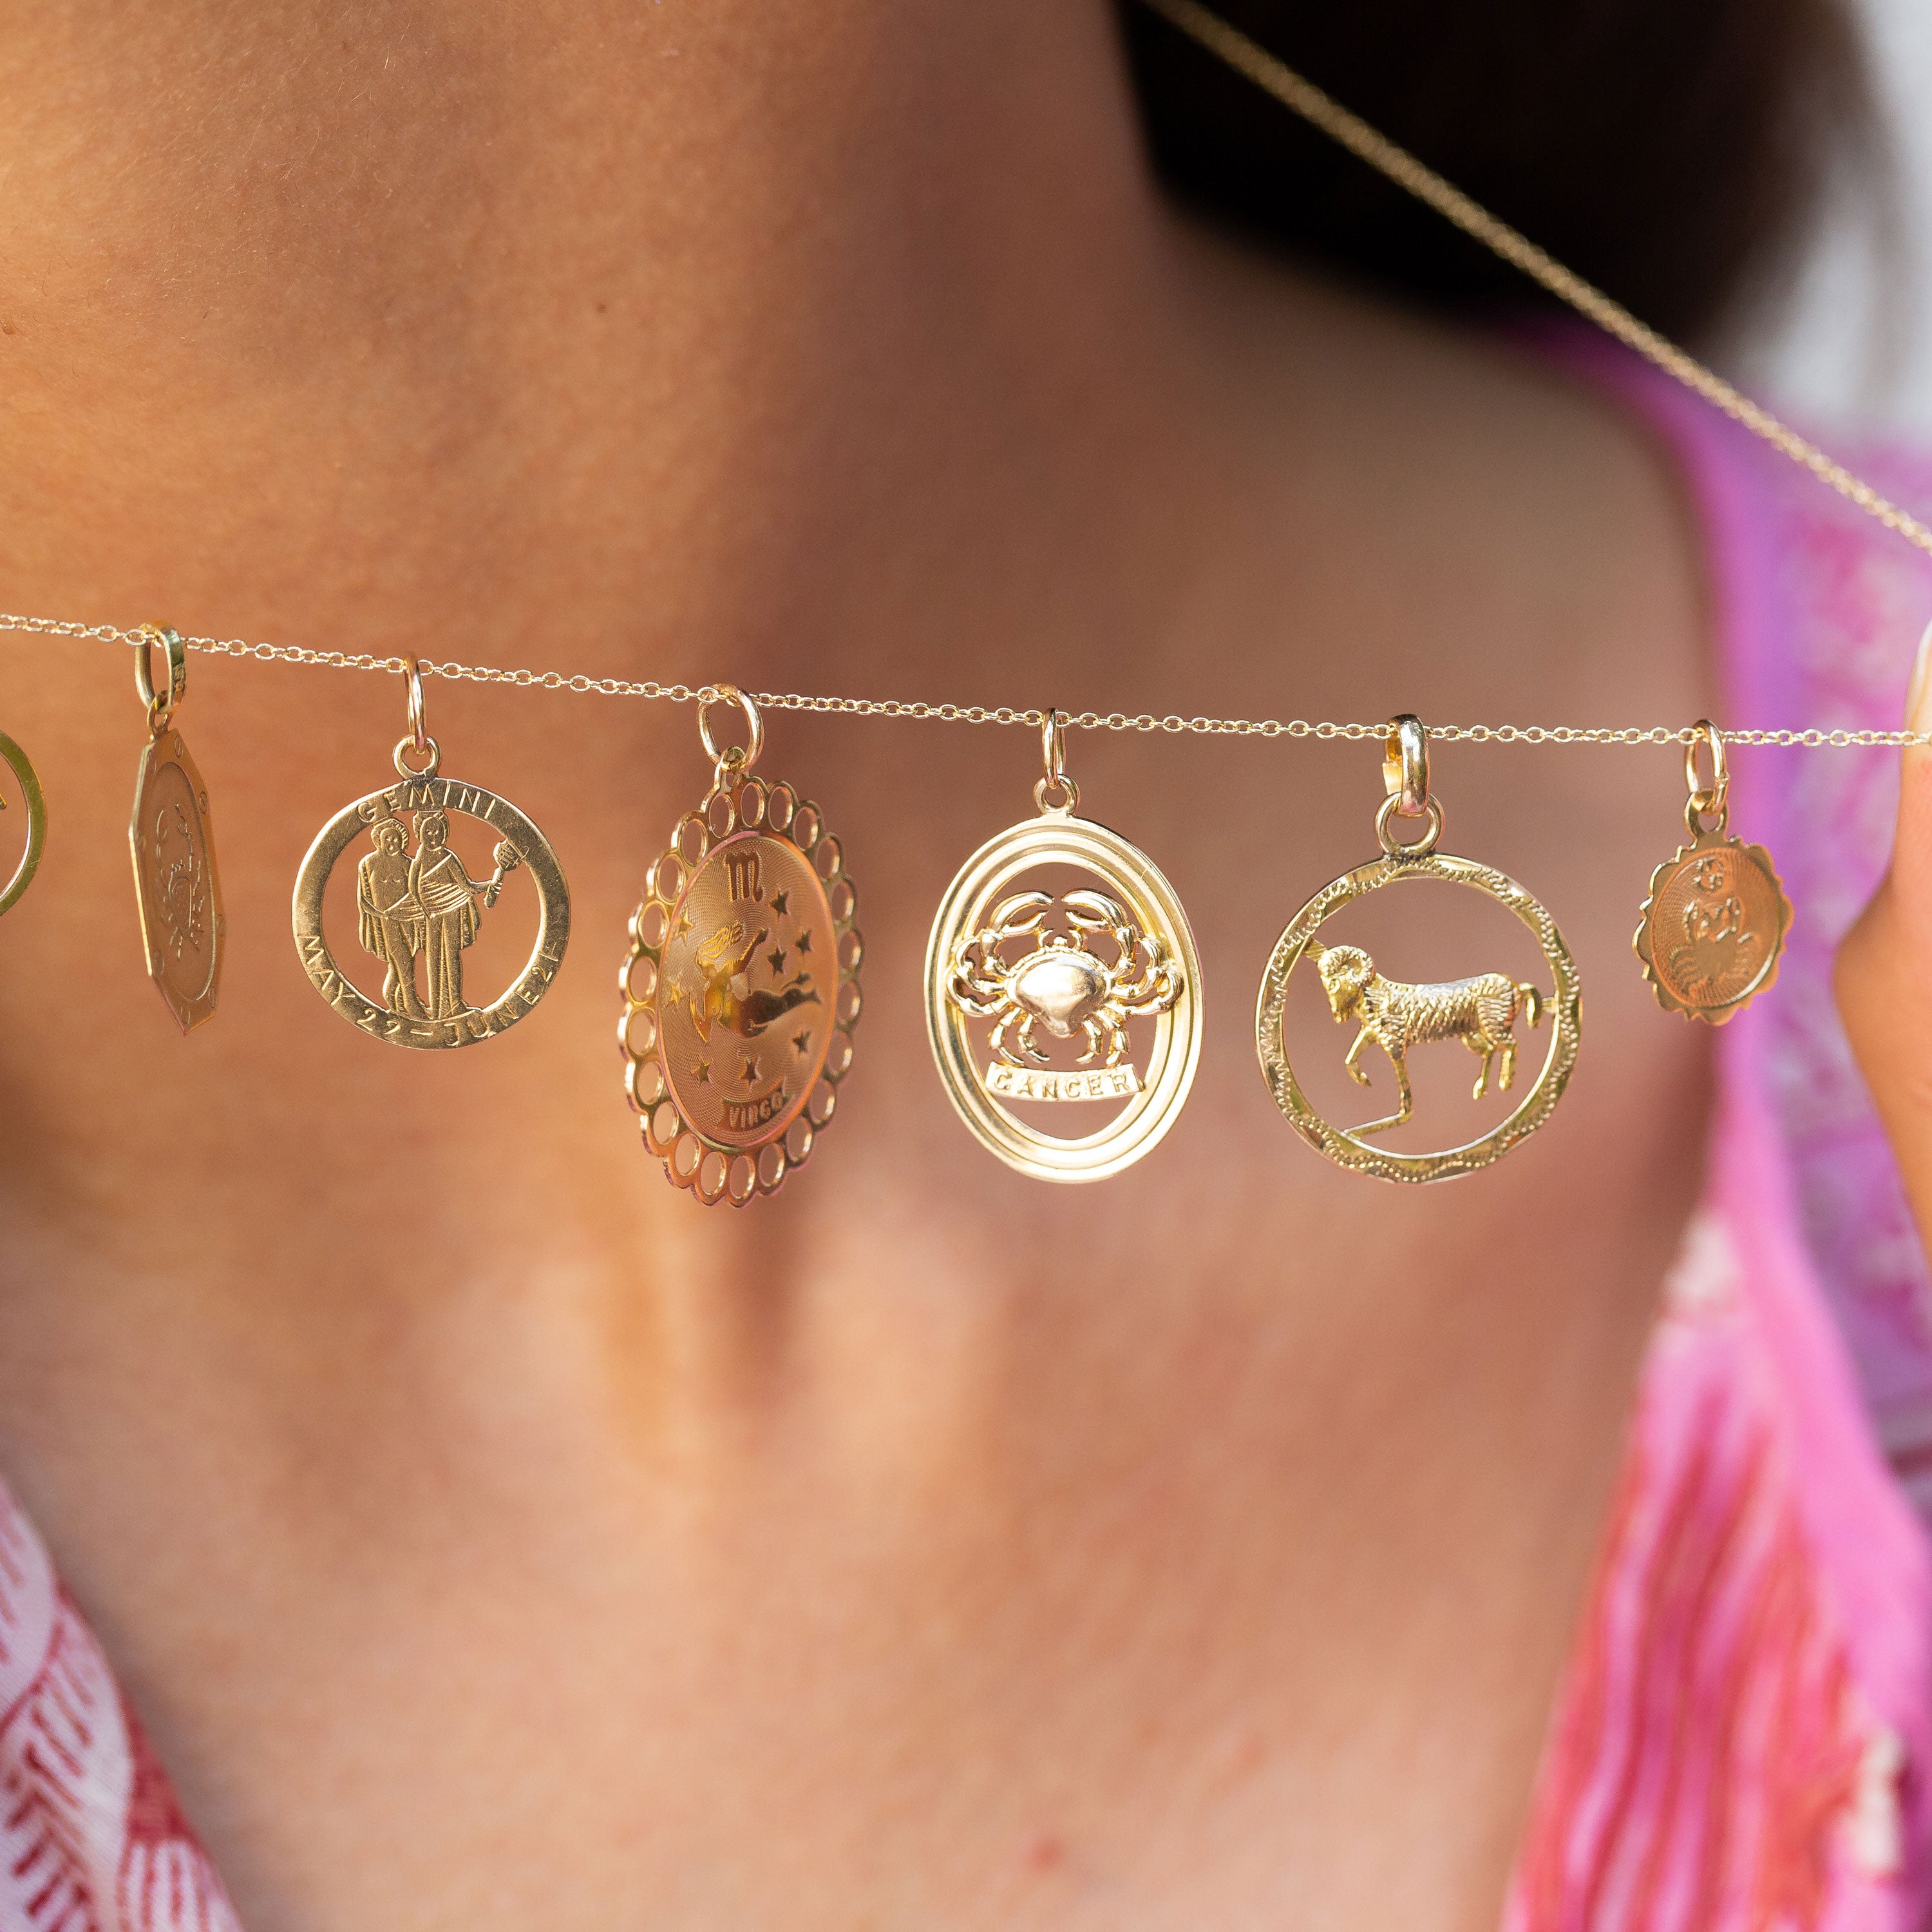 English Cancer 9K Gold Oval Zodiac Charm